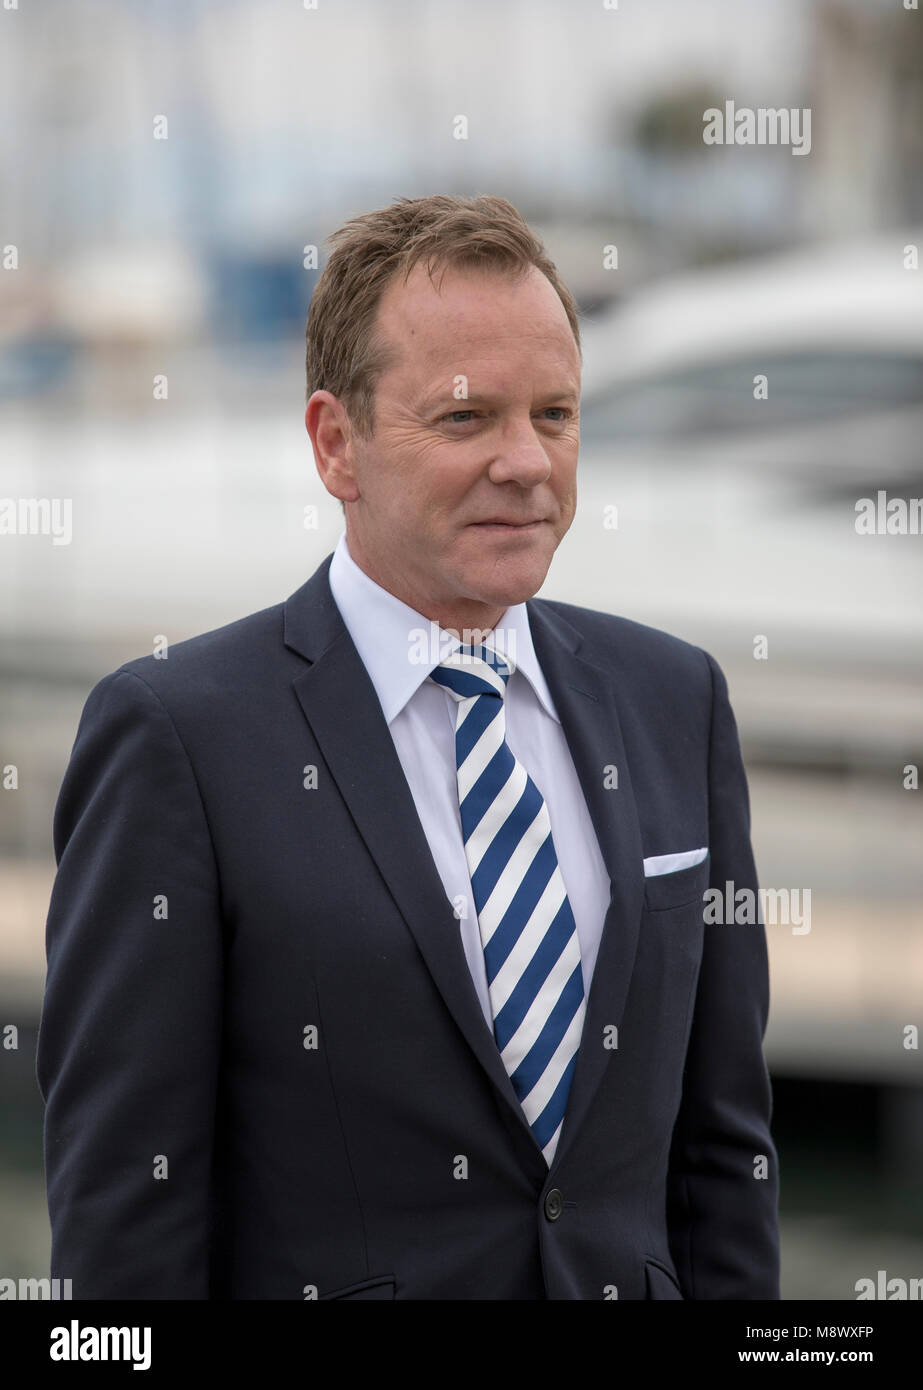 Cannes, France, Oct. 17 2016, Kiefer Sutherland is a Canadian actor, producer, director, singer and songwriter, - Stock Image